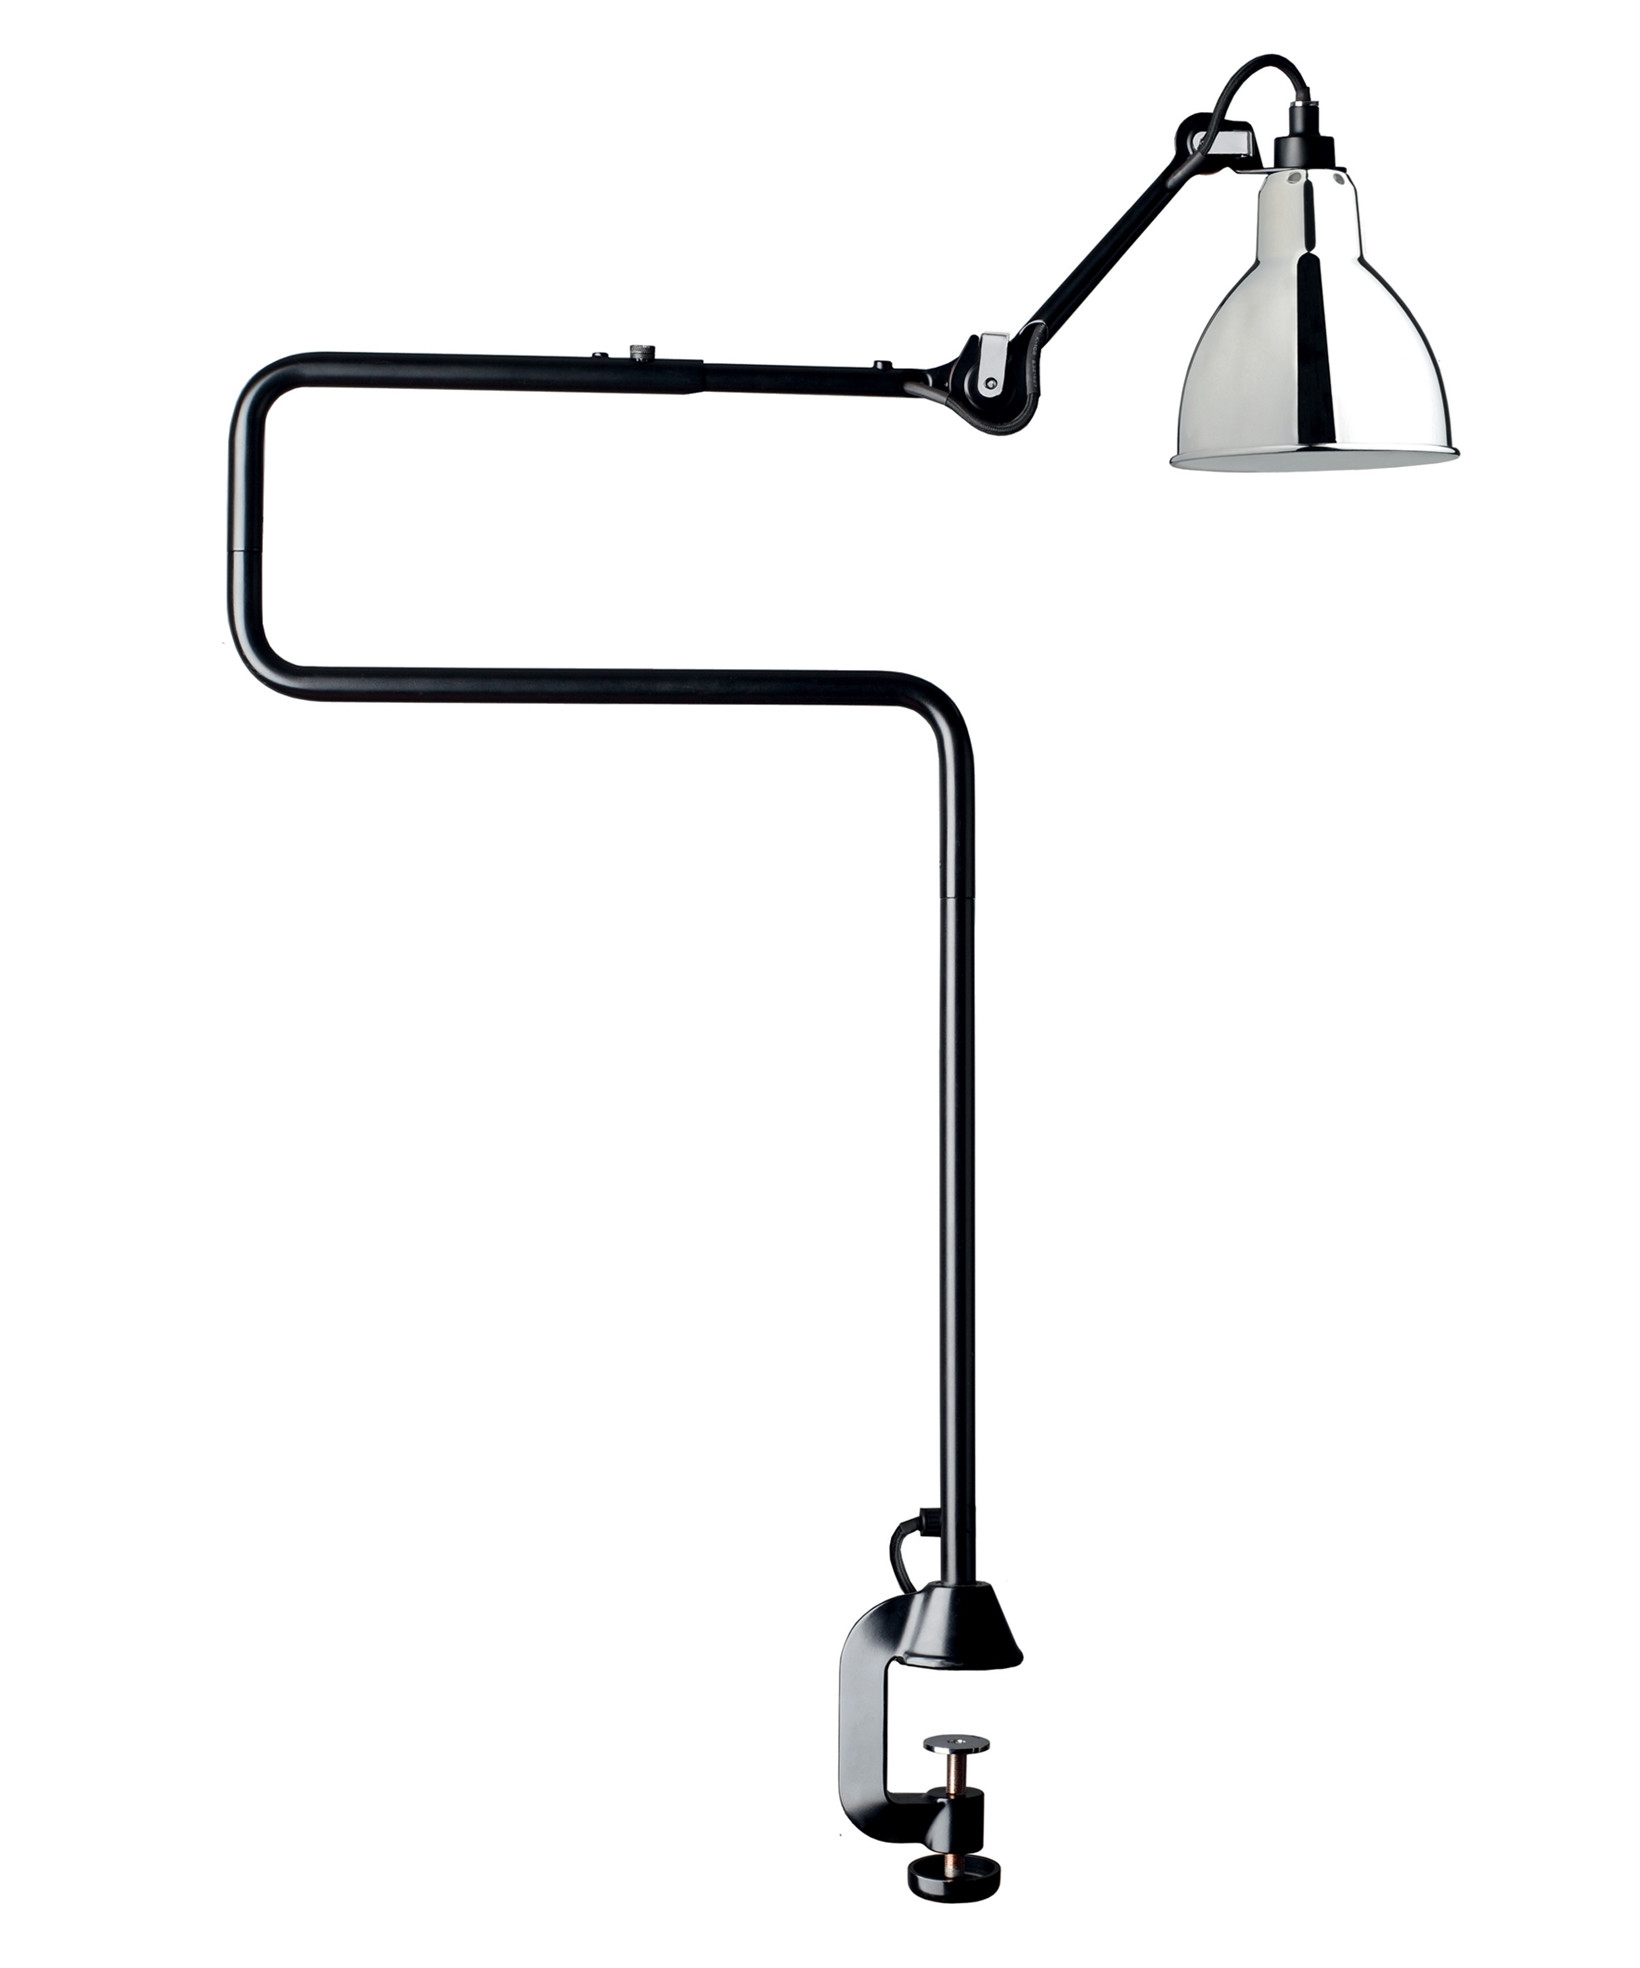 Image of   211-311 Bordlampe Krom - Lampe Gras